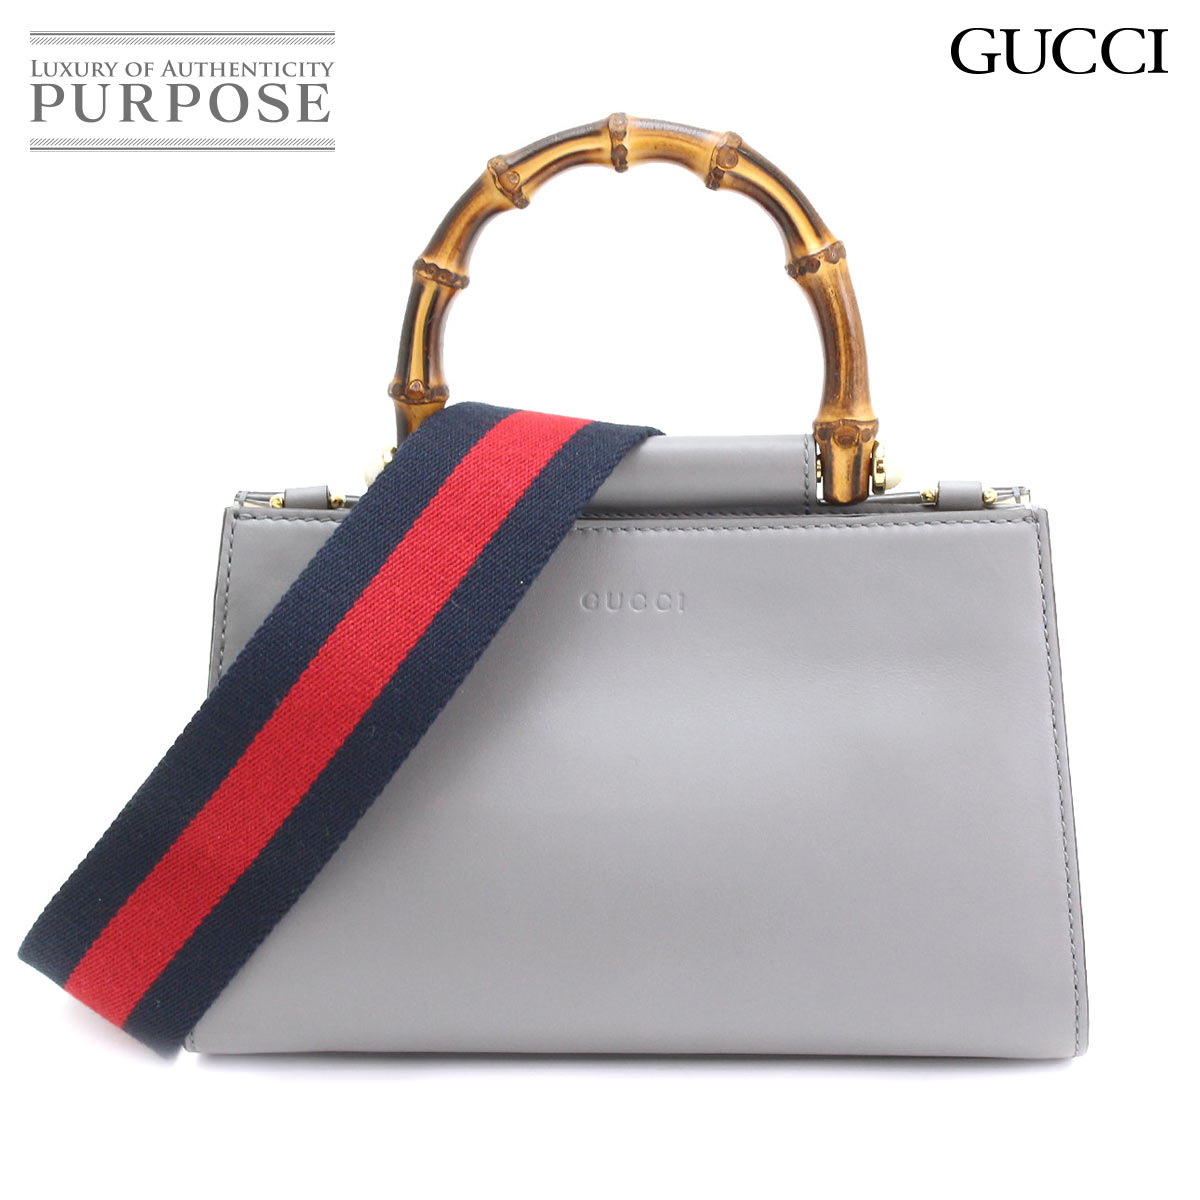 With Gucci GUCCI bamboo two ムフェア 2WAY hand shoulder bag leather gray ivory  470271 493075 strap